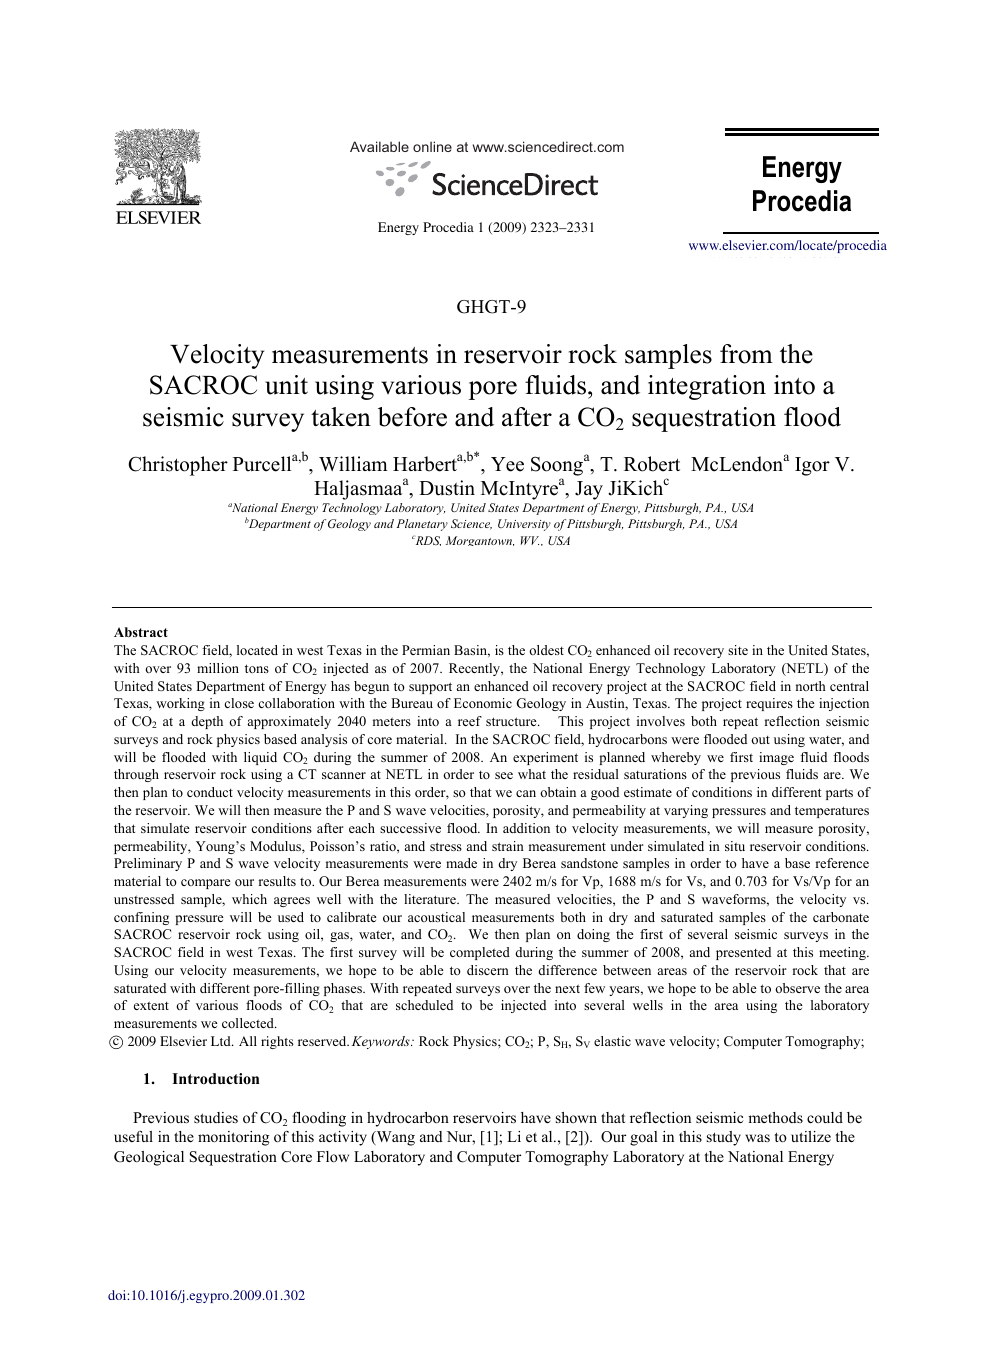 Velocity measurements in reservoir rock samples from the SACROC unit